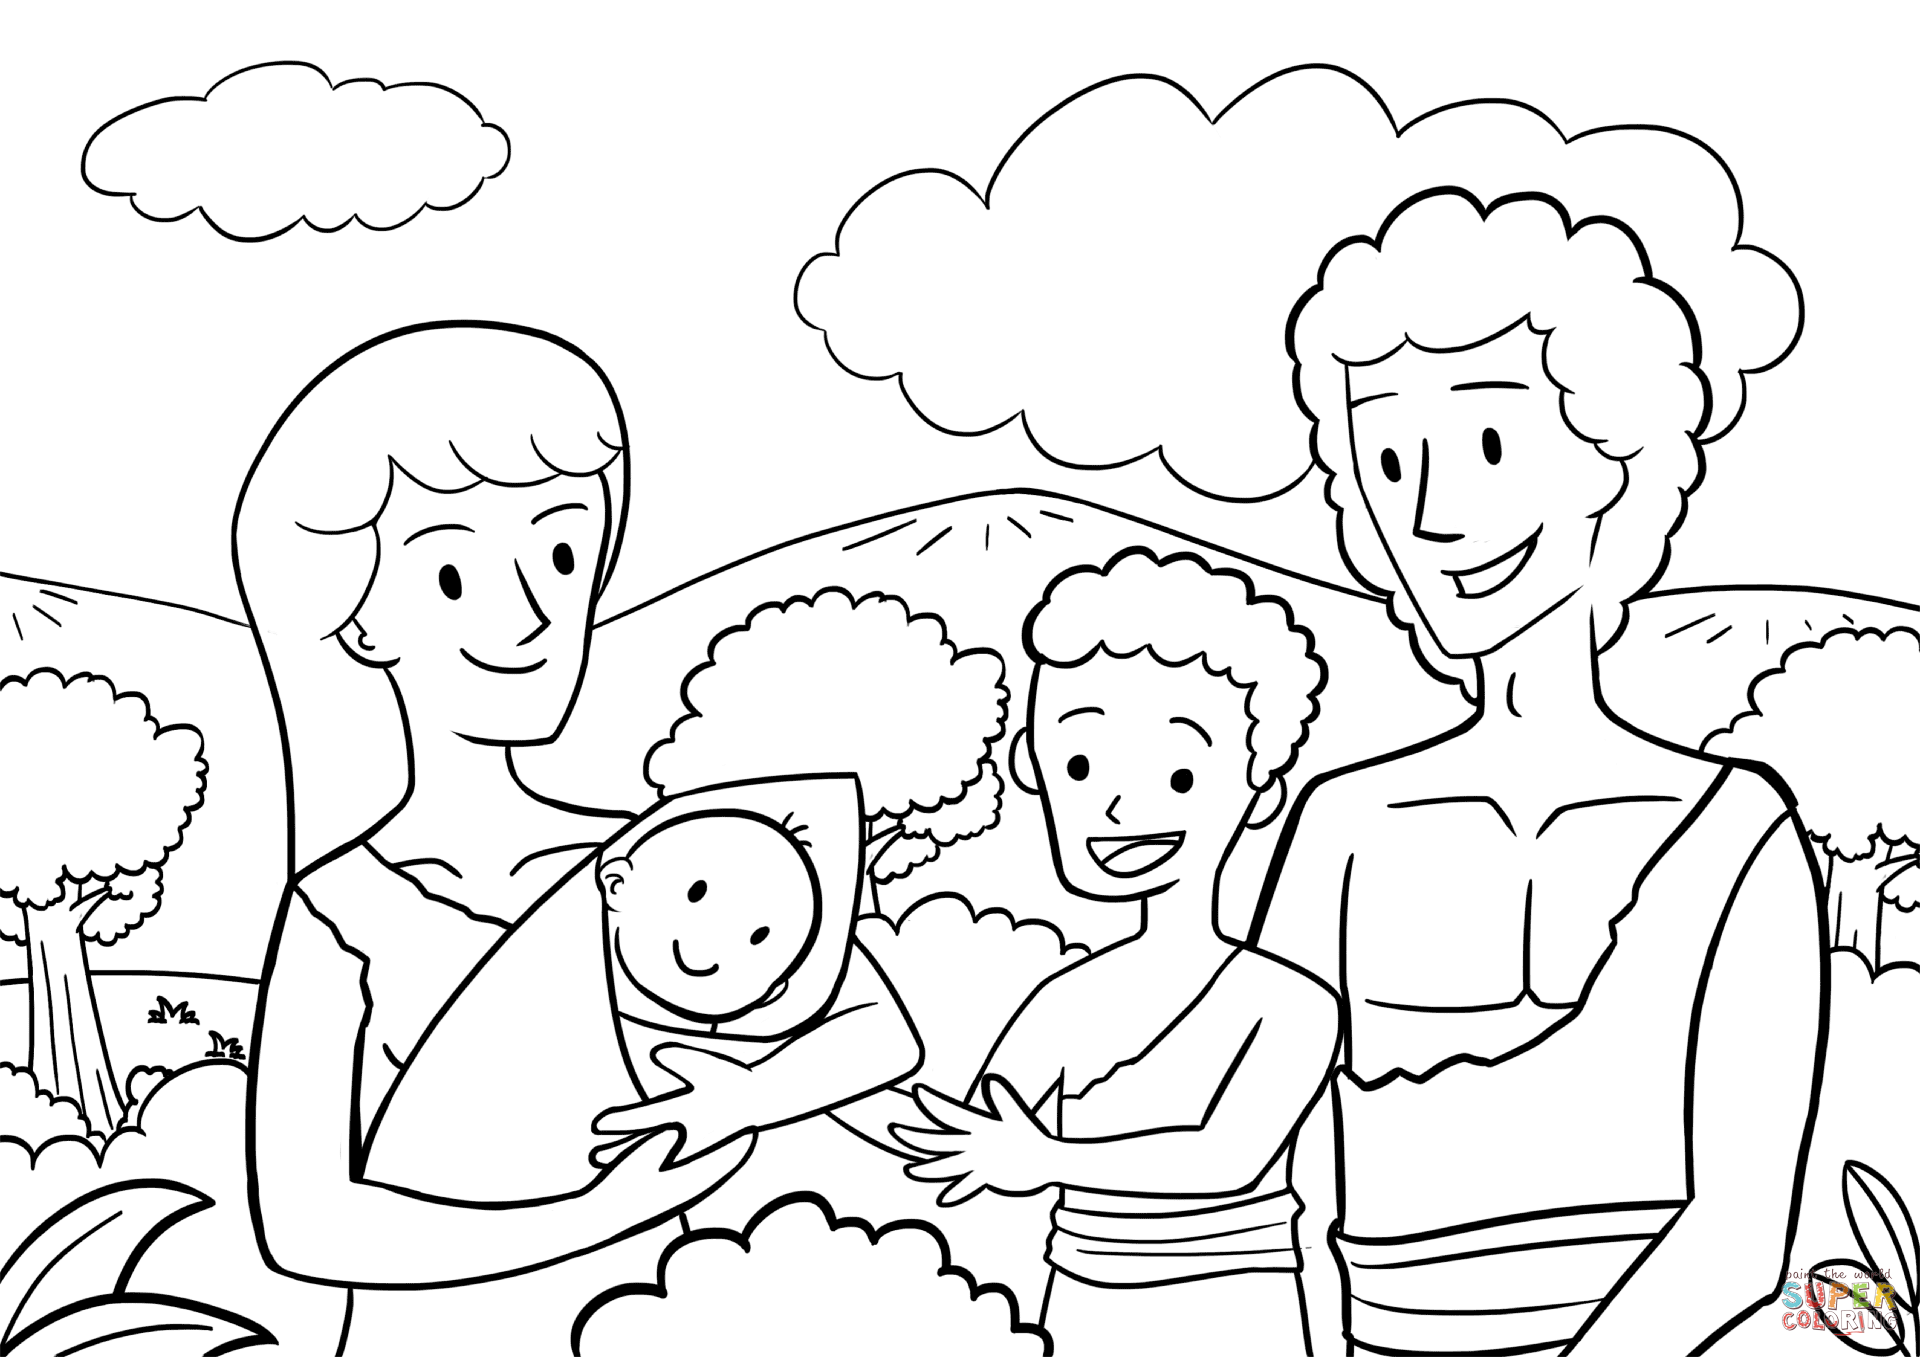 adam and eve coloring sheet adam and eve coloring page coloring home coloring and adam sheet eve